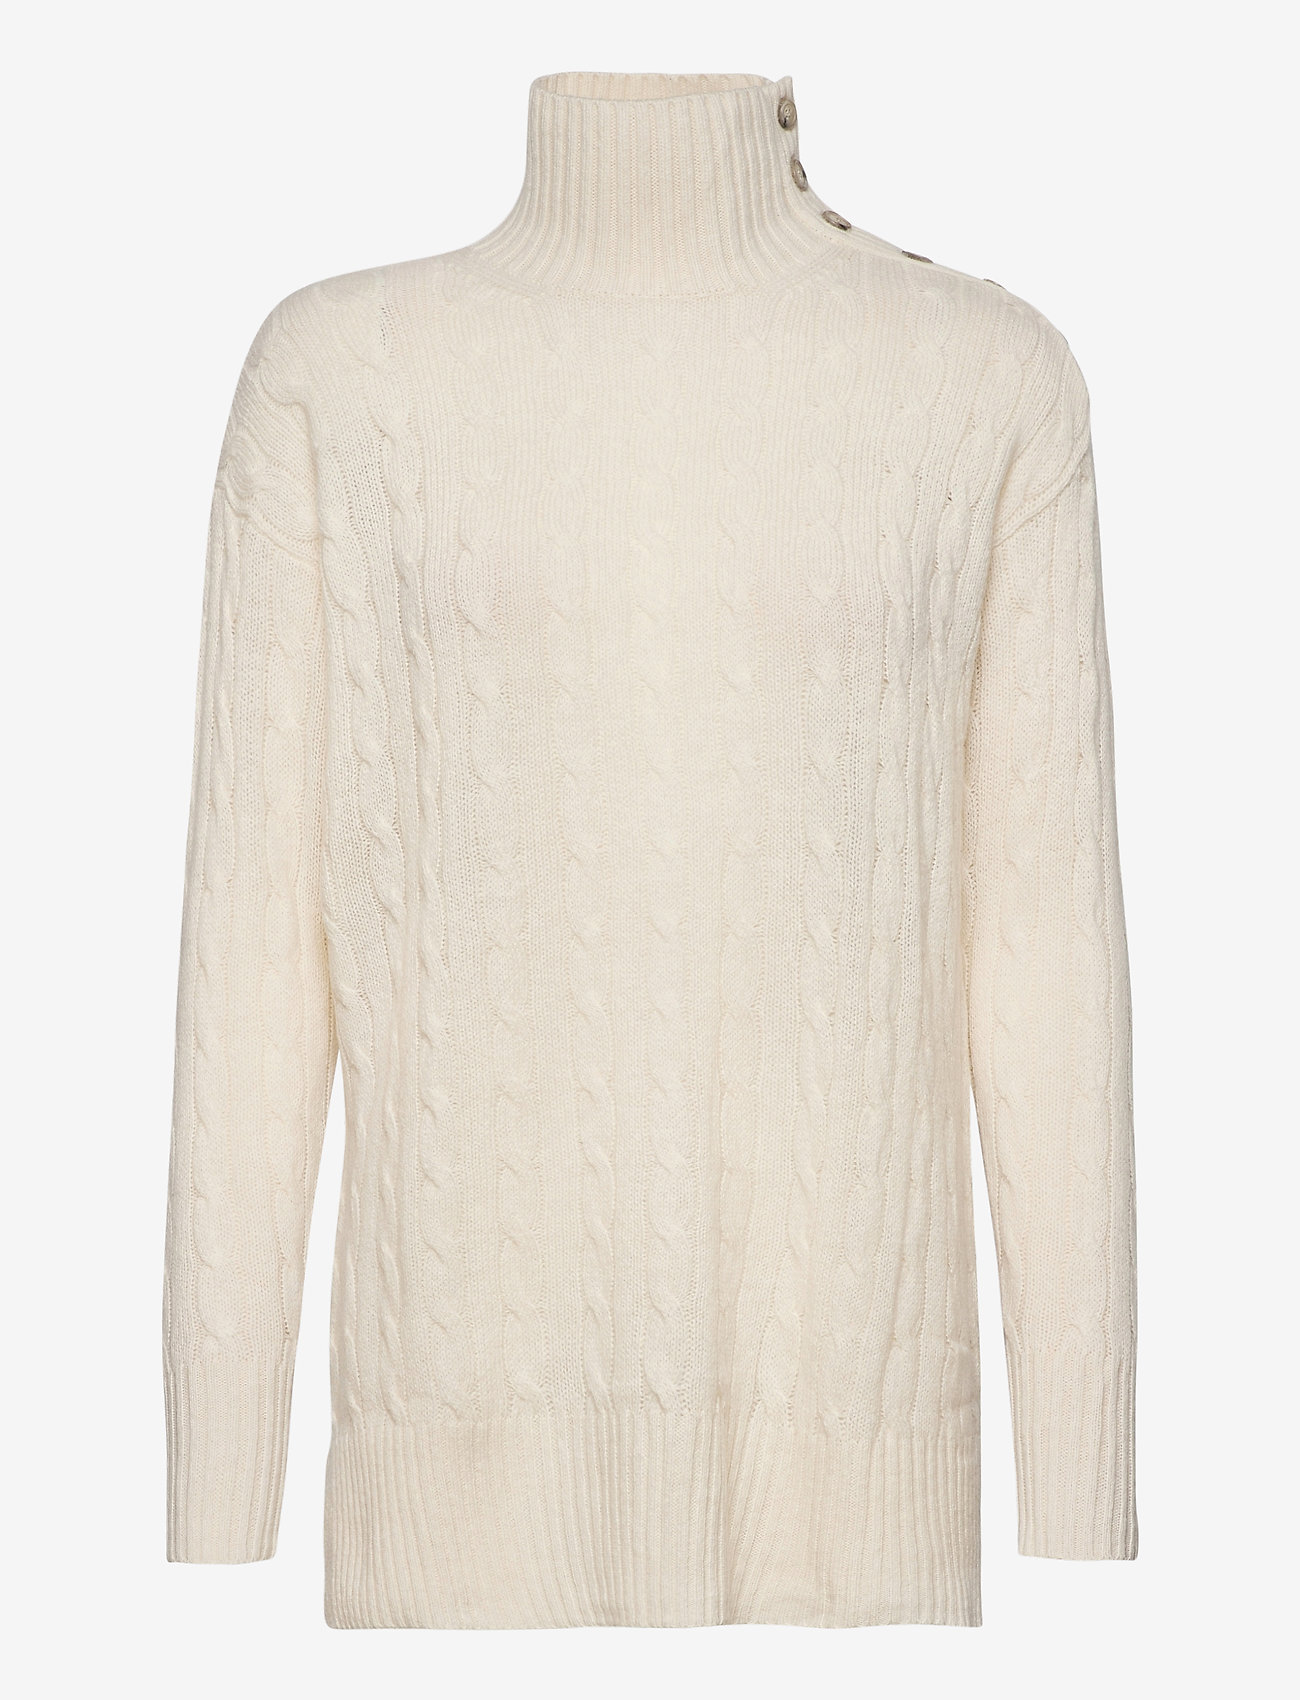 Polo Ralph Lauren - Buttoned-Placket Turtleneck - turtlenecks - cream - 0